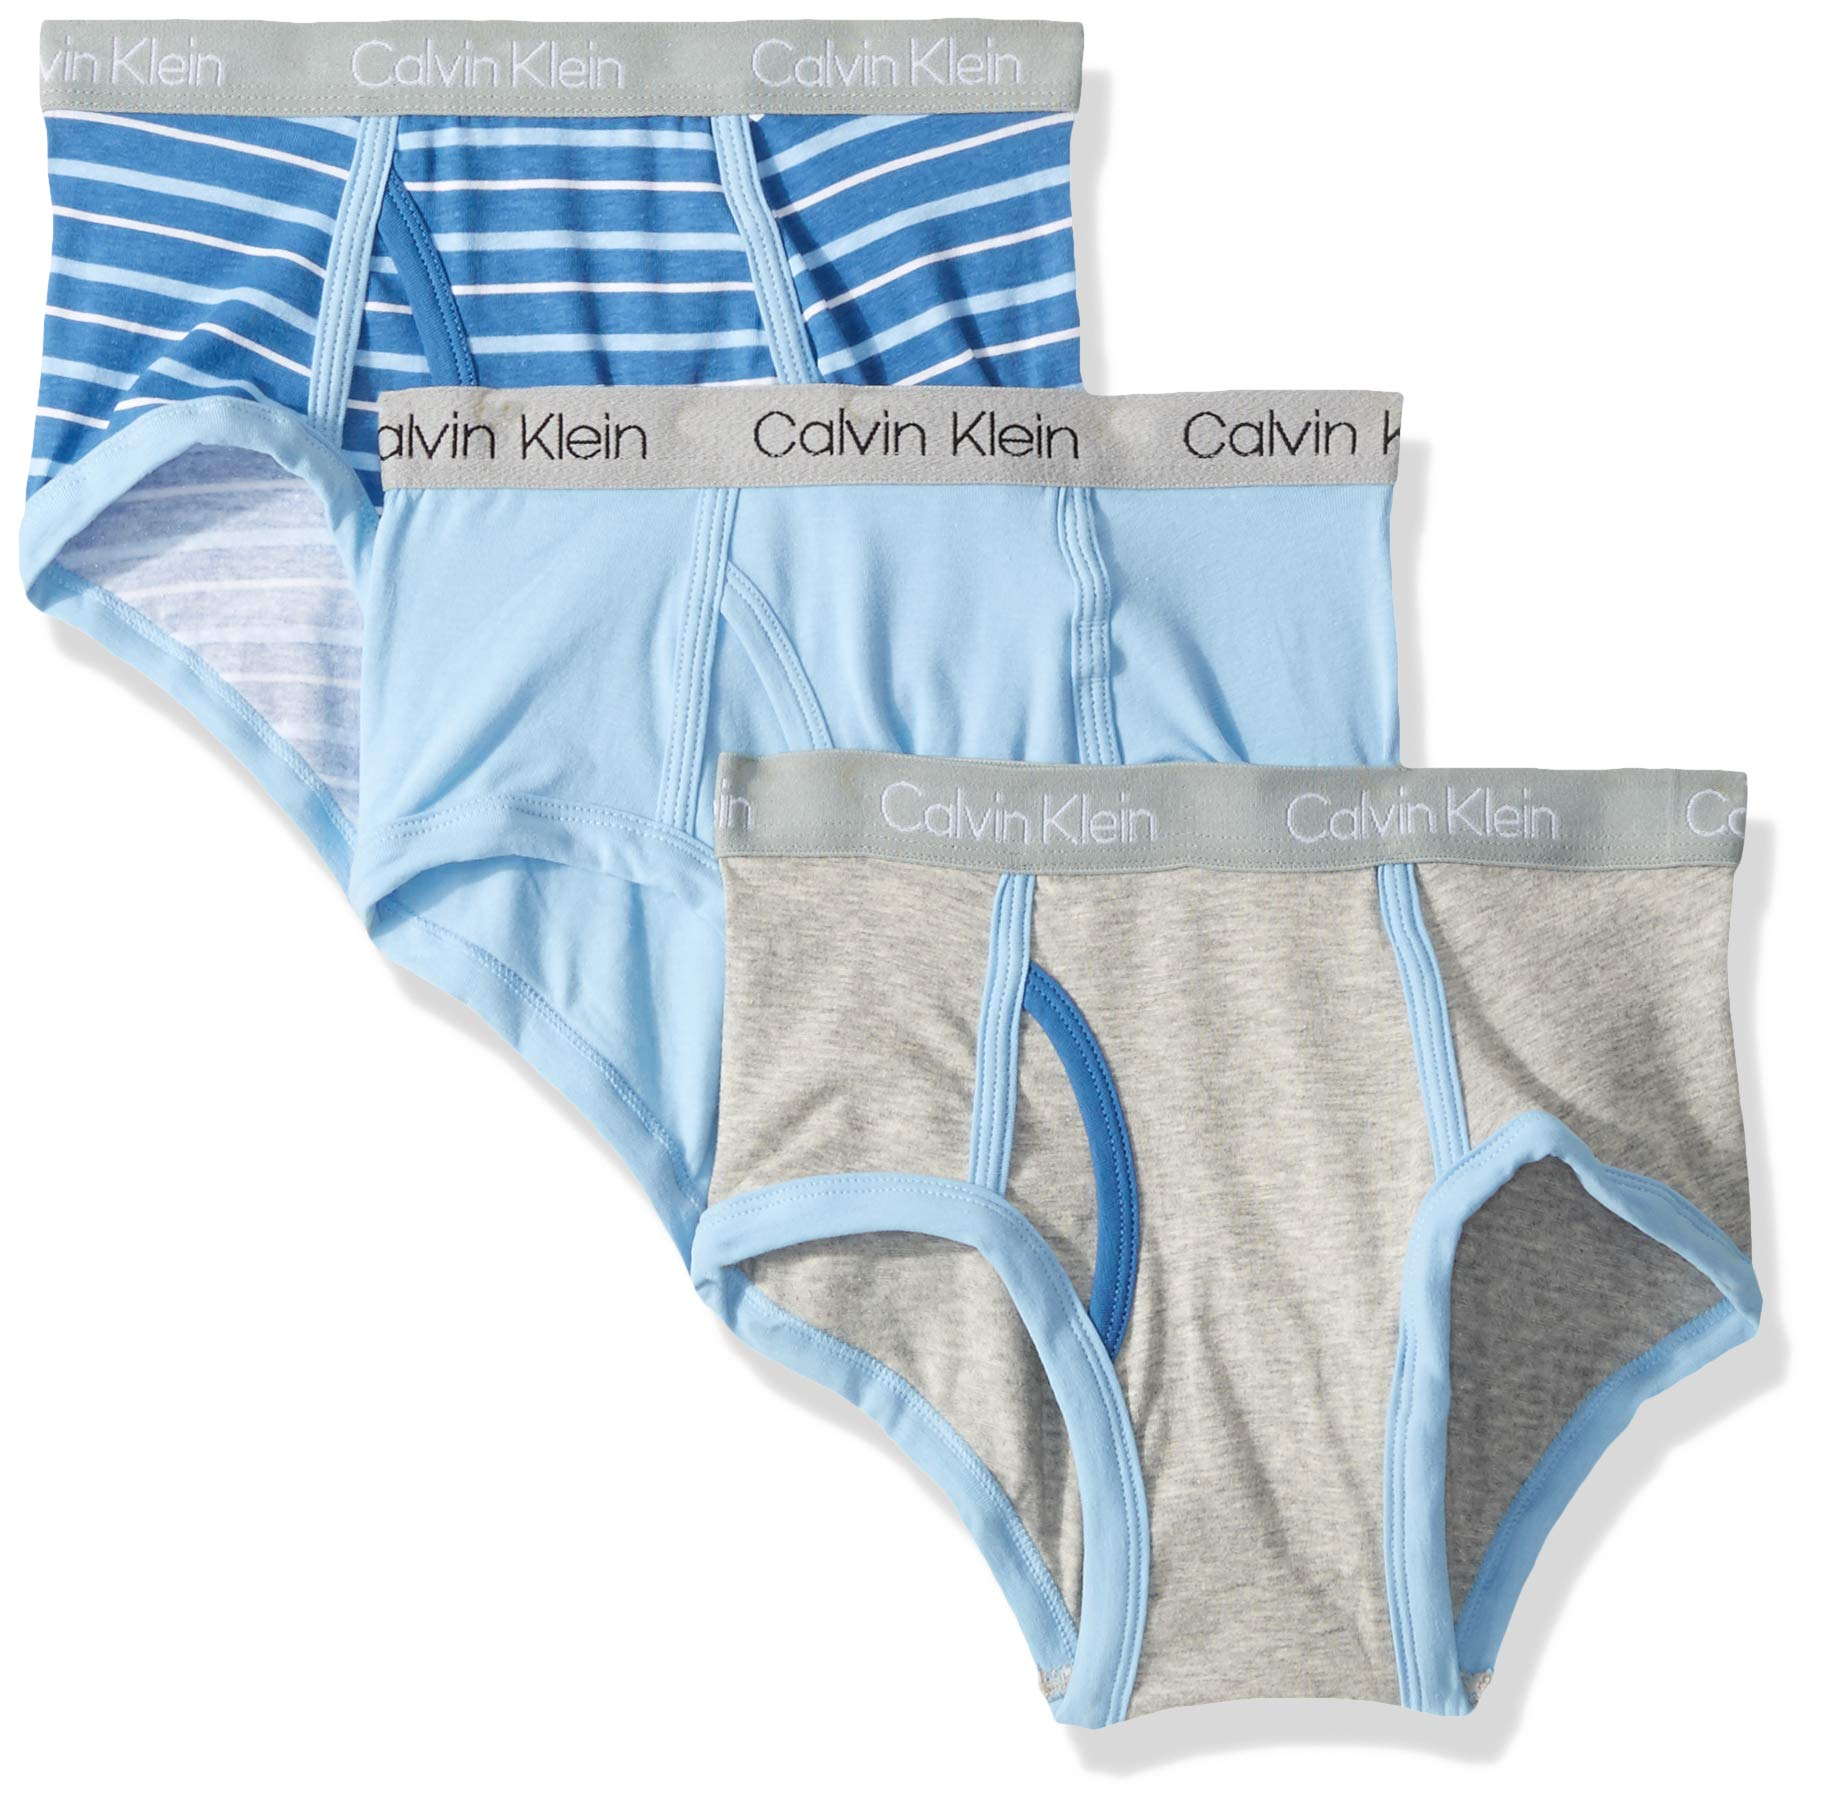 Calvin Klein Big Boys' Modern Cotton Assorted Briefs Underwear, Multipack, Stripe, Blue Bell, Heather Grey, Medium-8/10